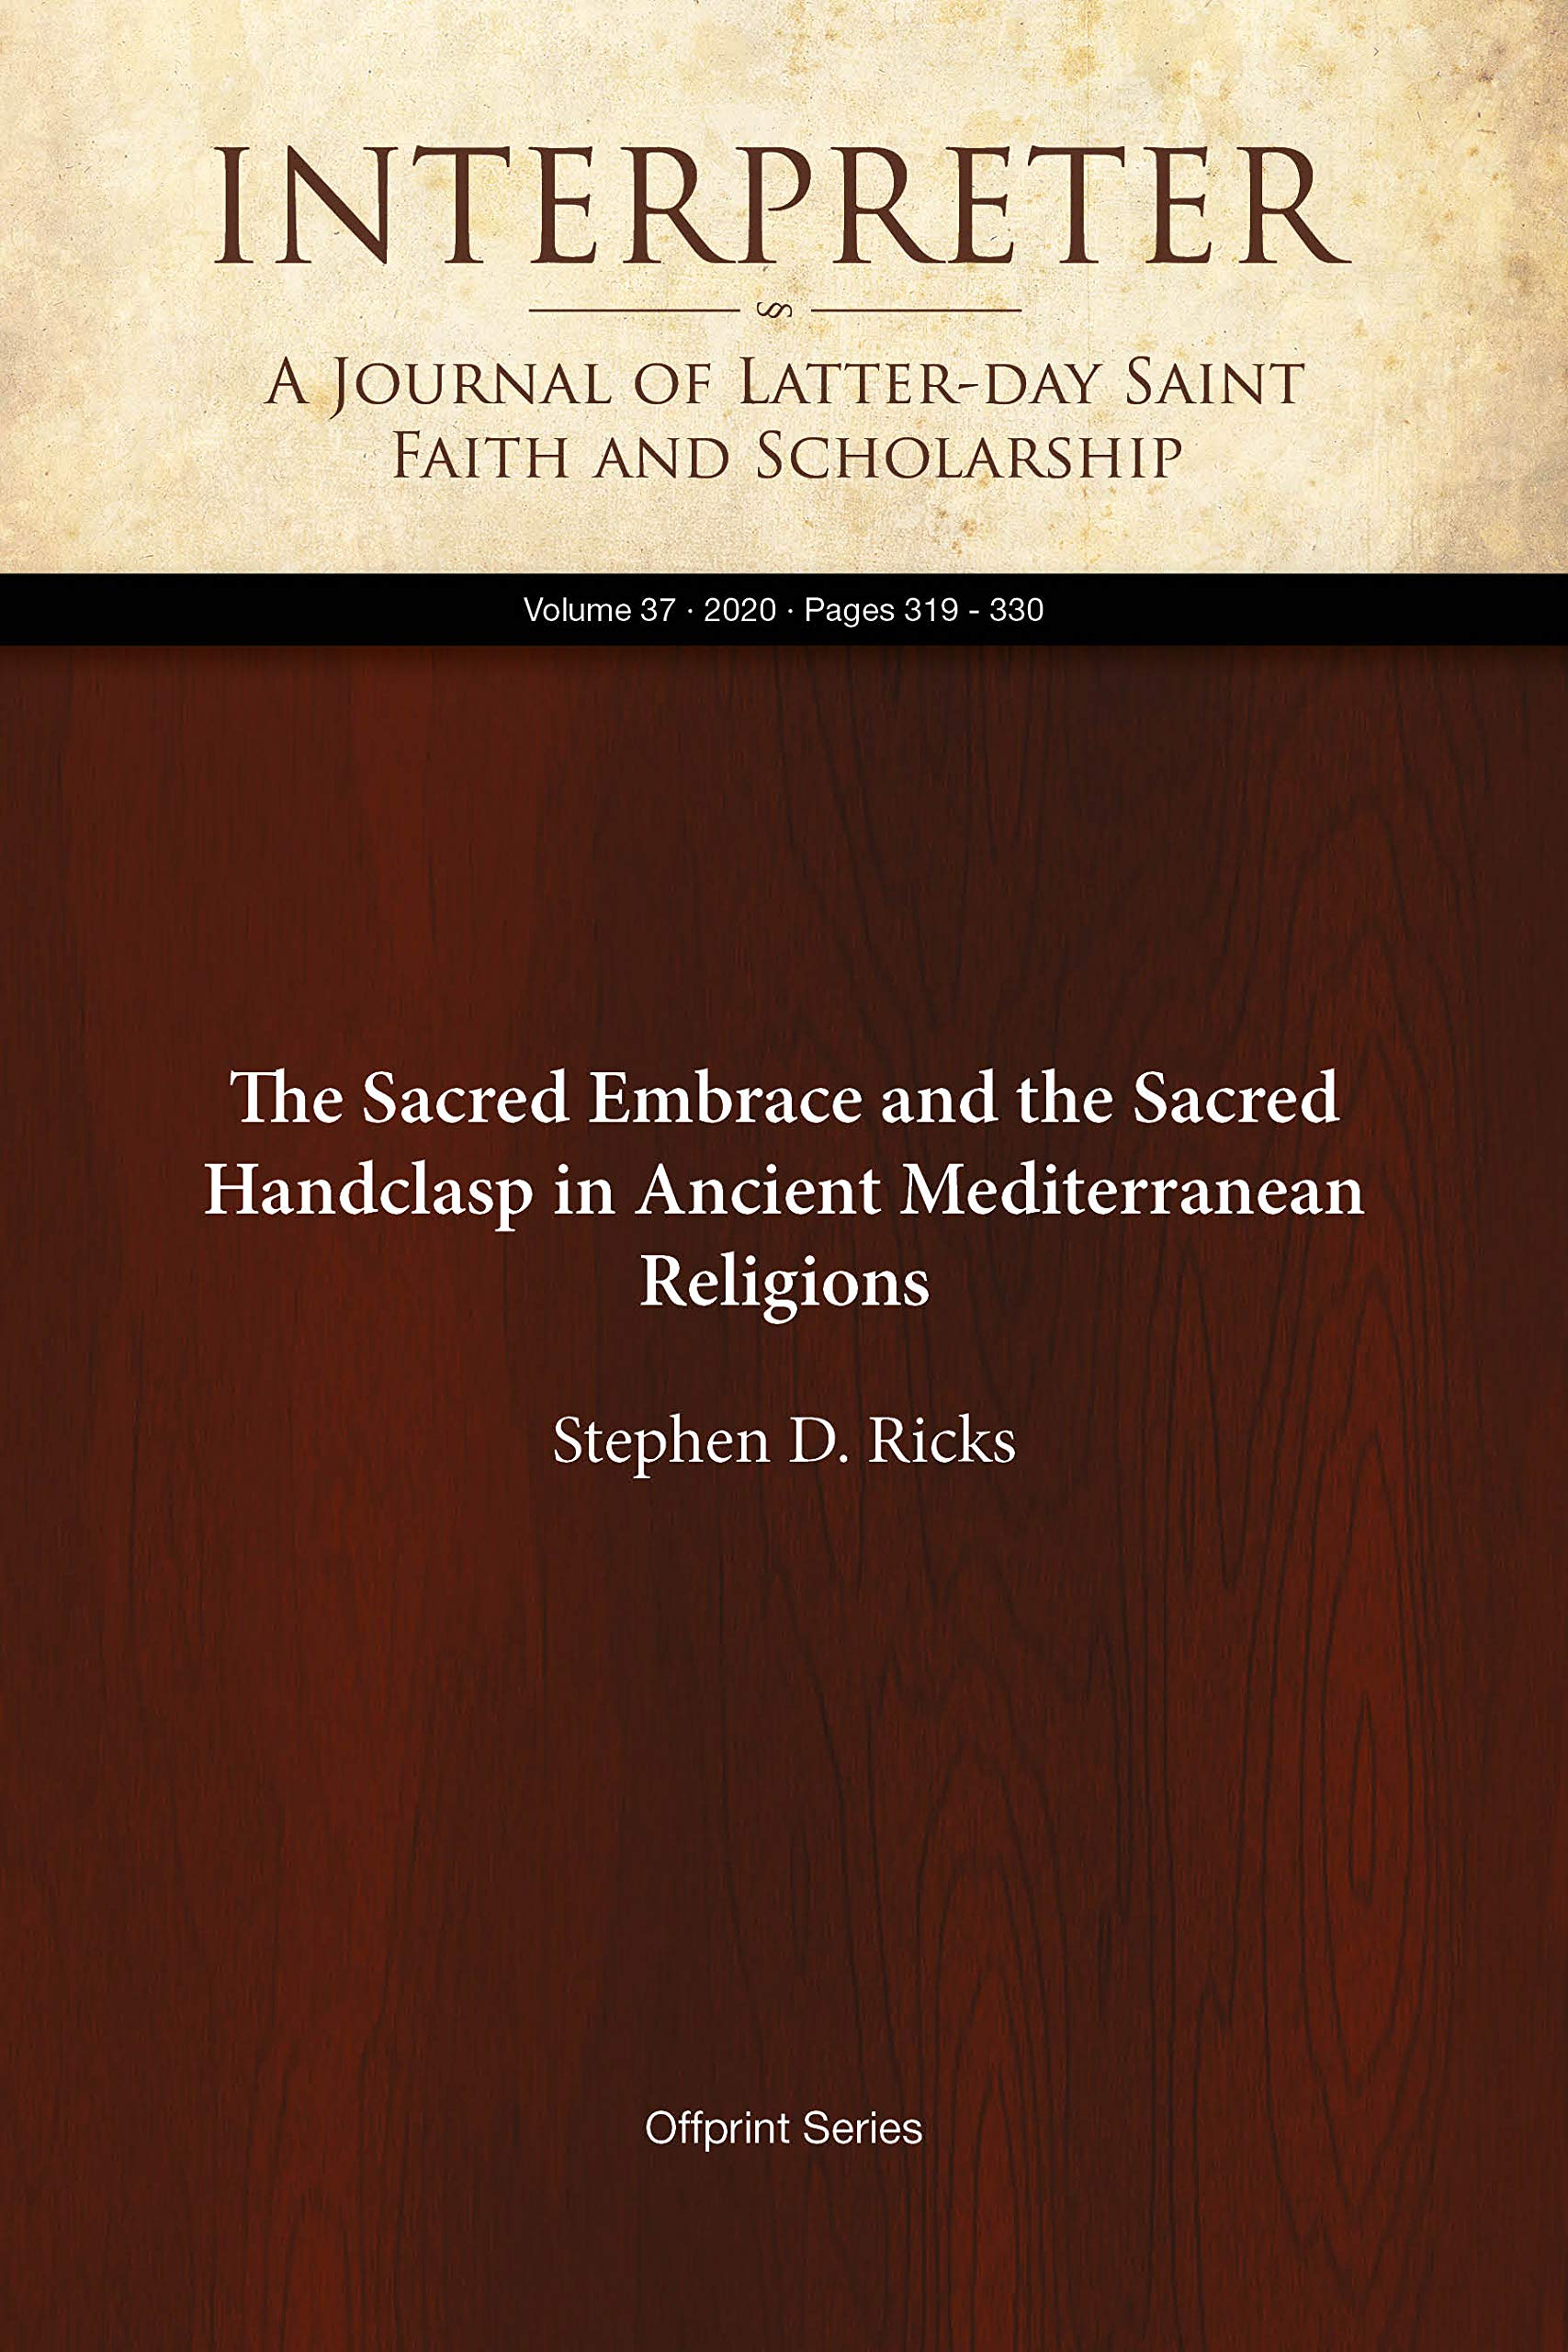 The Sacred Embrace and the Sacred Handclasp in Ancient Mediterranean Religions (Interpreter: A Journal of Latter-day Saint Faith and Scholarship Book 37)